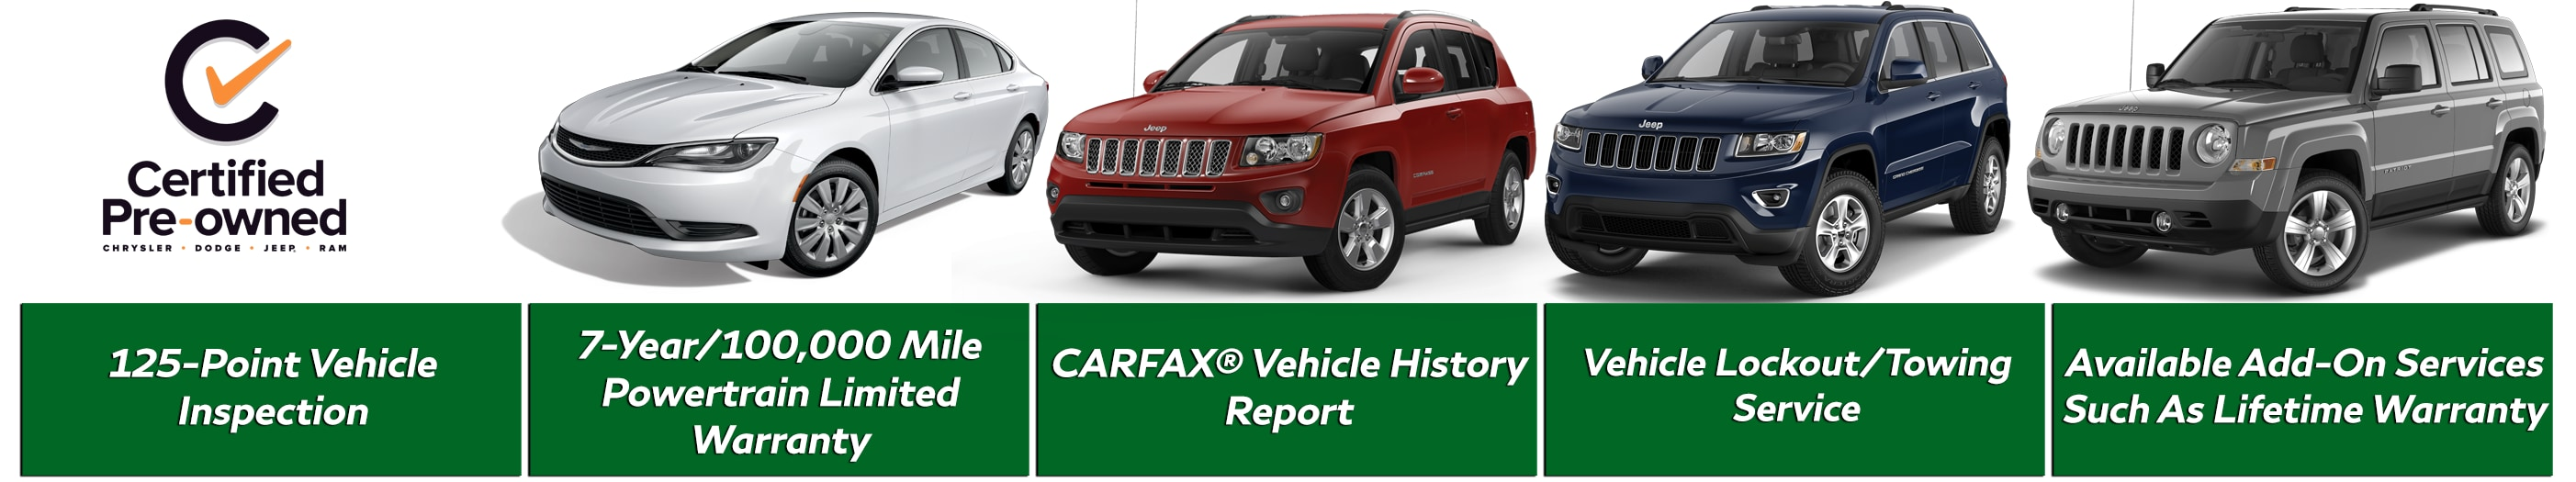 Certified Pre Owned Jeep And Chrysler Cars And Suv S In Lynnfield